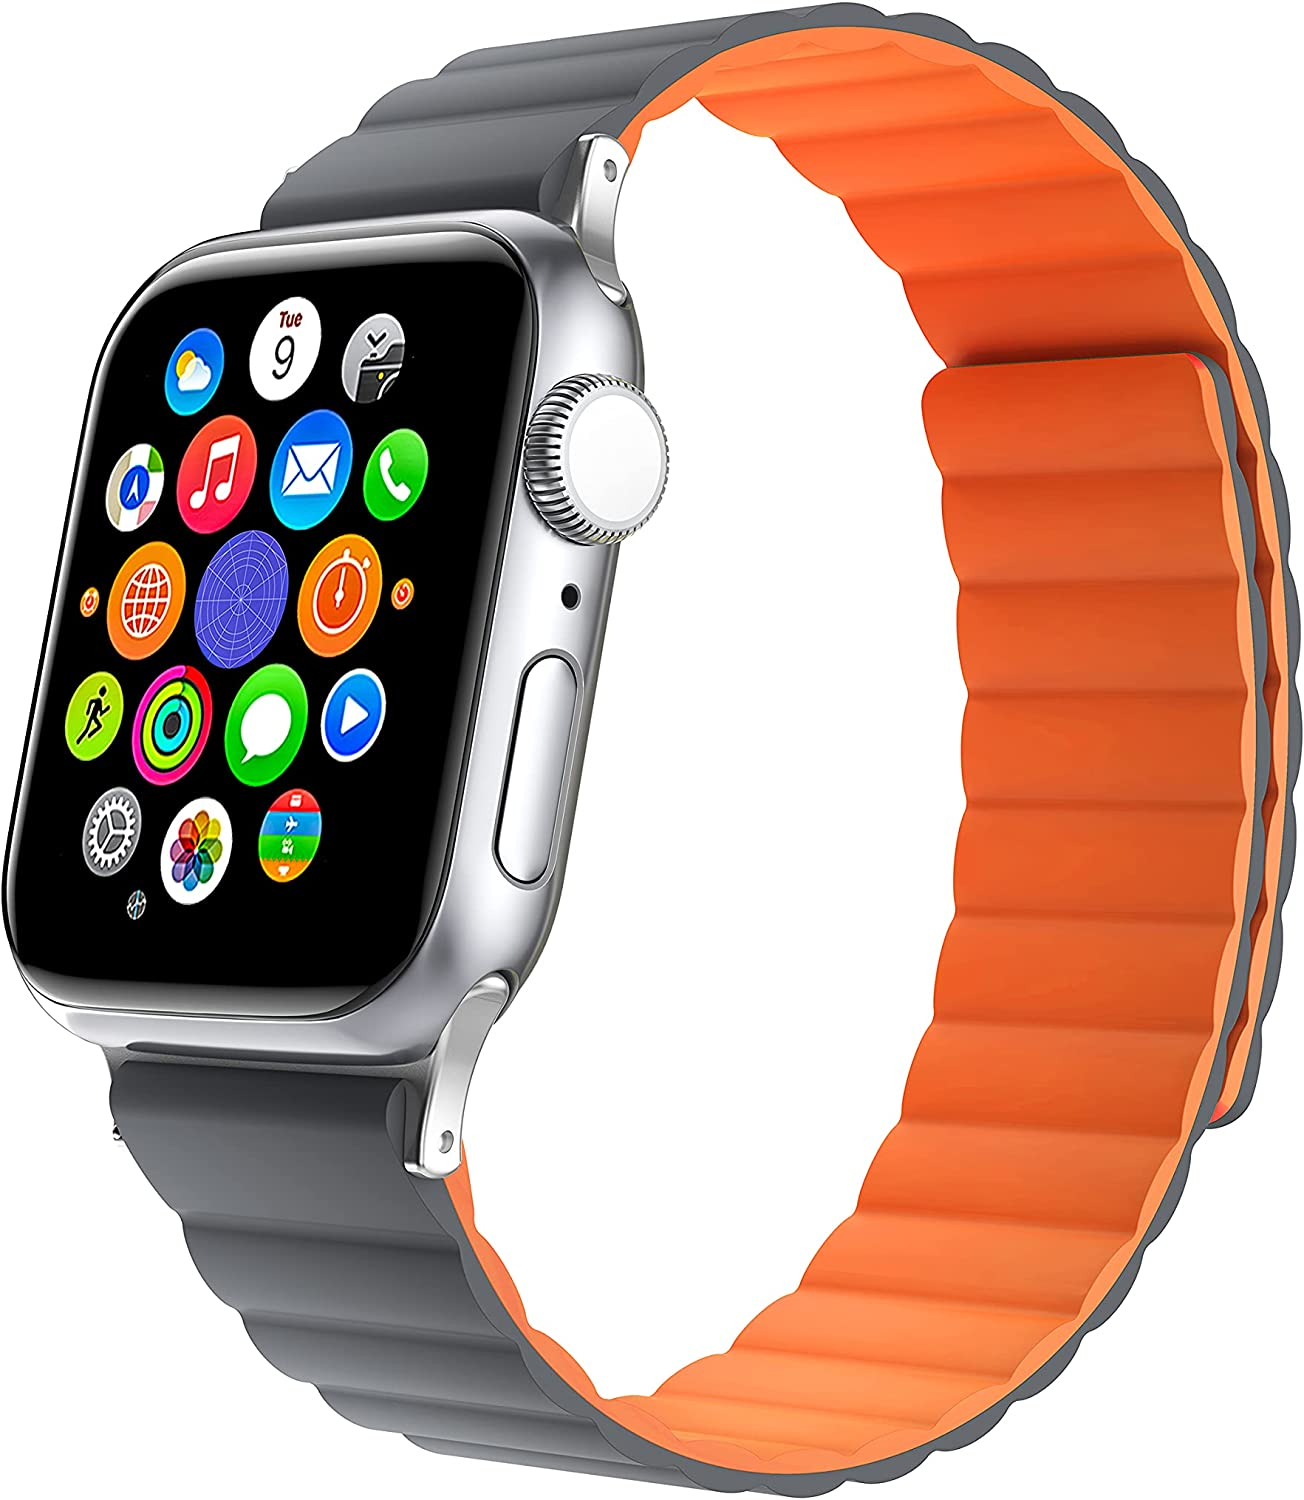 KAHHA Apple Watch Magnetic Bands(Upgrade the magnet) Compatible with iWatch Series SE 6 5 4 3 2 1 38mm 40mm 42mm 44mm Silicone Strong Magnetic Adjustable Smartwatch Straps for Women and Men…